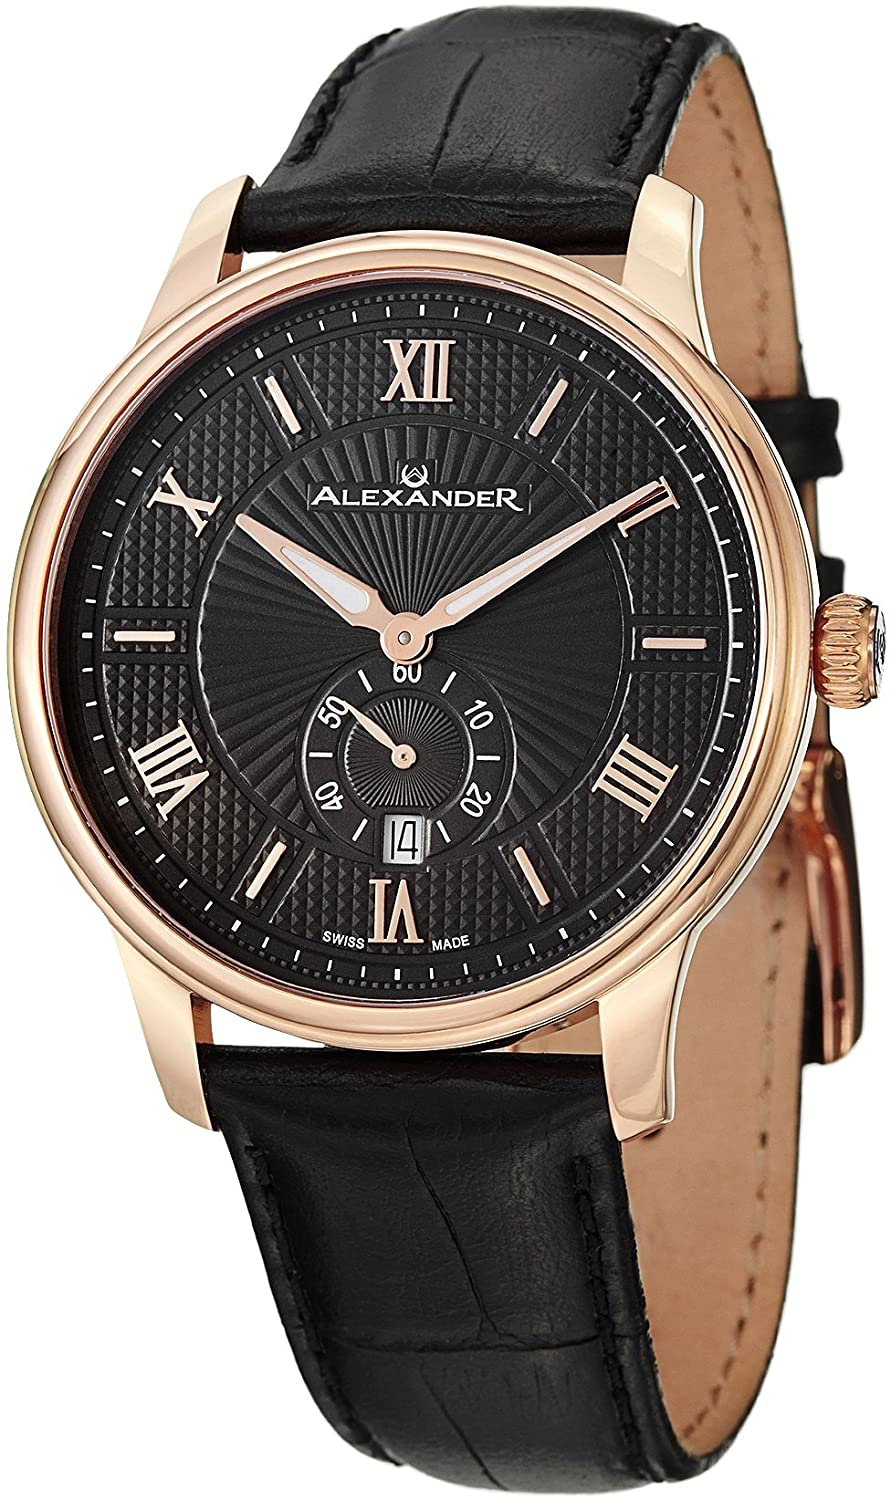 b816258130c Alexander Statesman Regalia Wrist Watch for Men - Black Leather Analog  Swiss Watch - Stainless Steel Plated Rose Gold Watch - Black Dial Date  Small Seconds ...